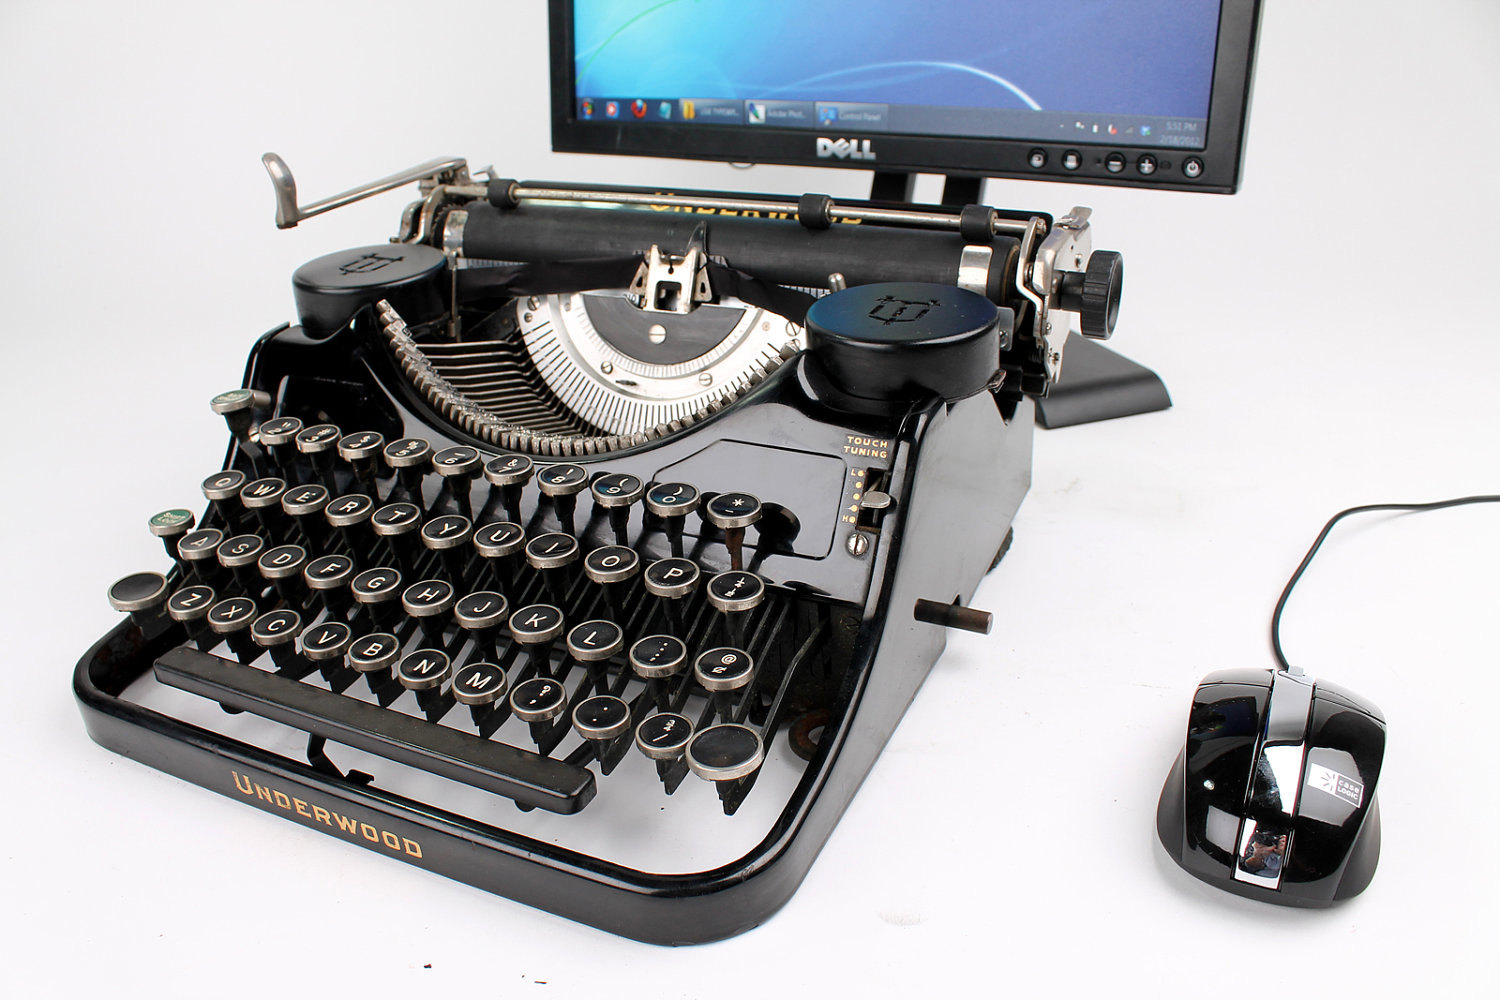 USB Typewriter Conversion Kit